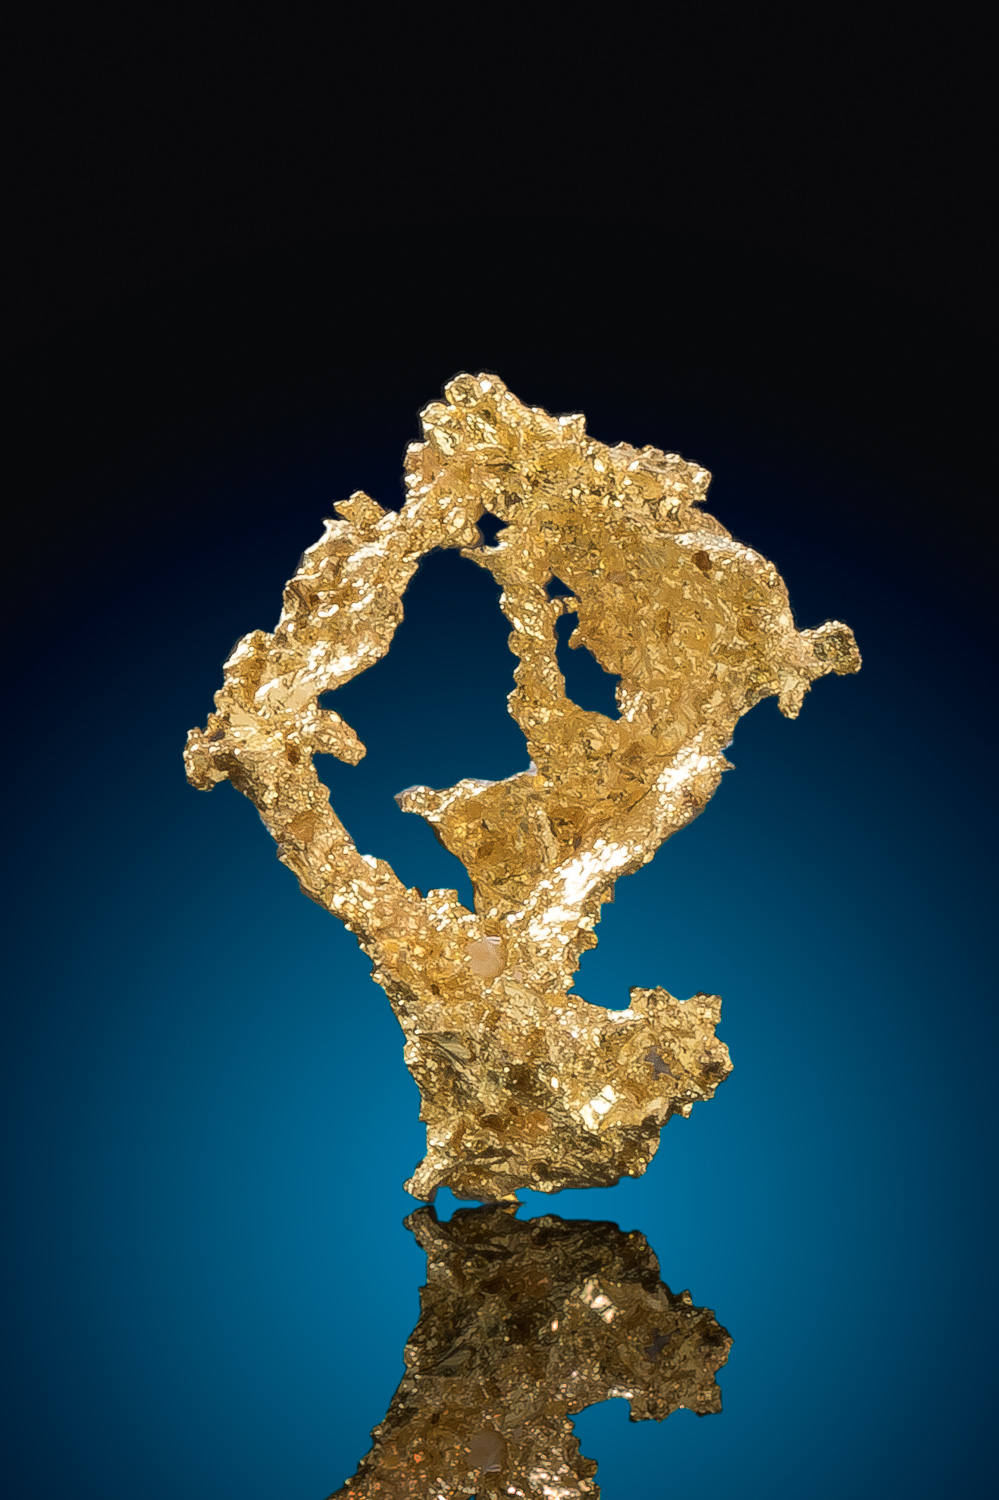 Beautiful Crystalline Gold Nugget from the Eagles Nest Gold Mine